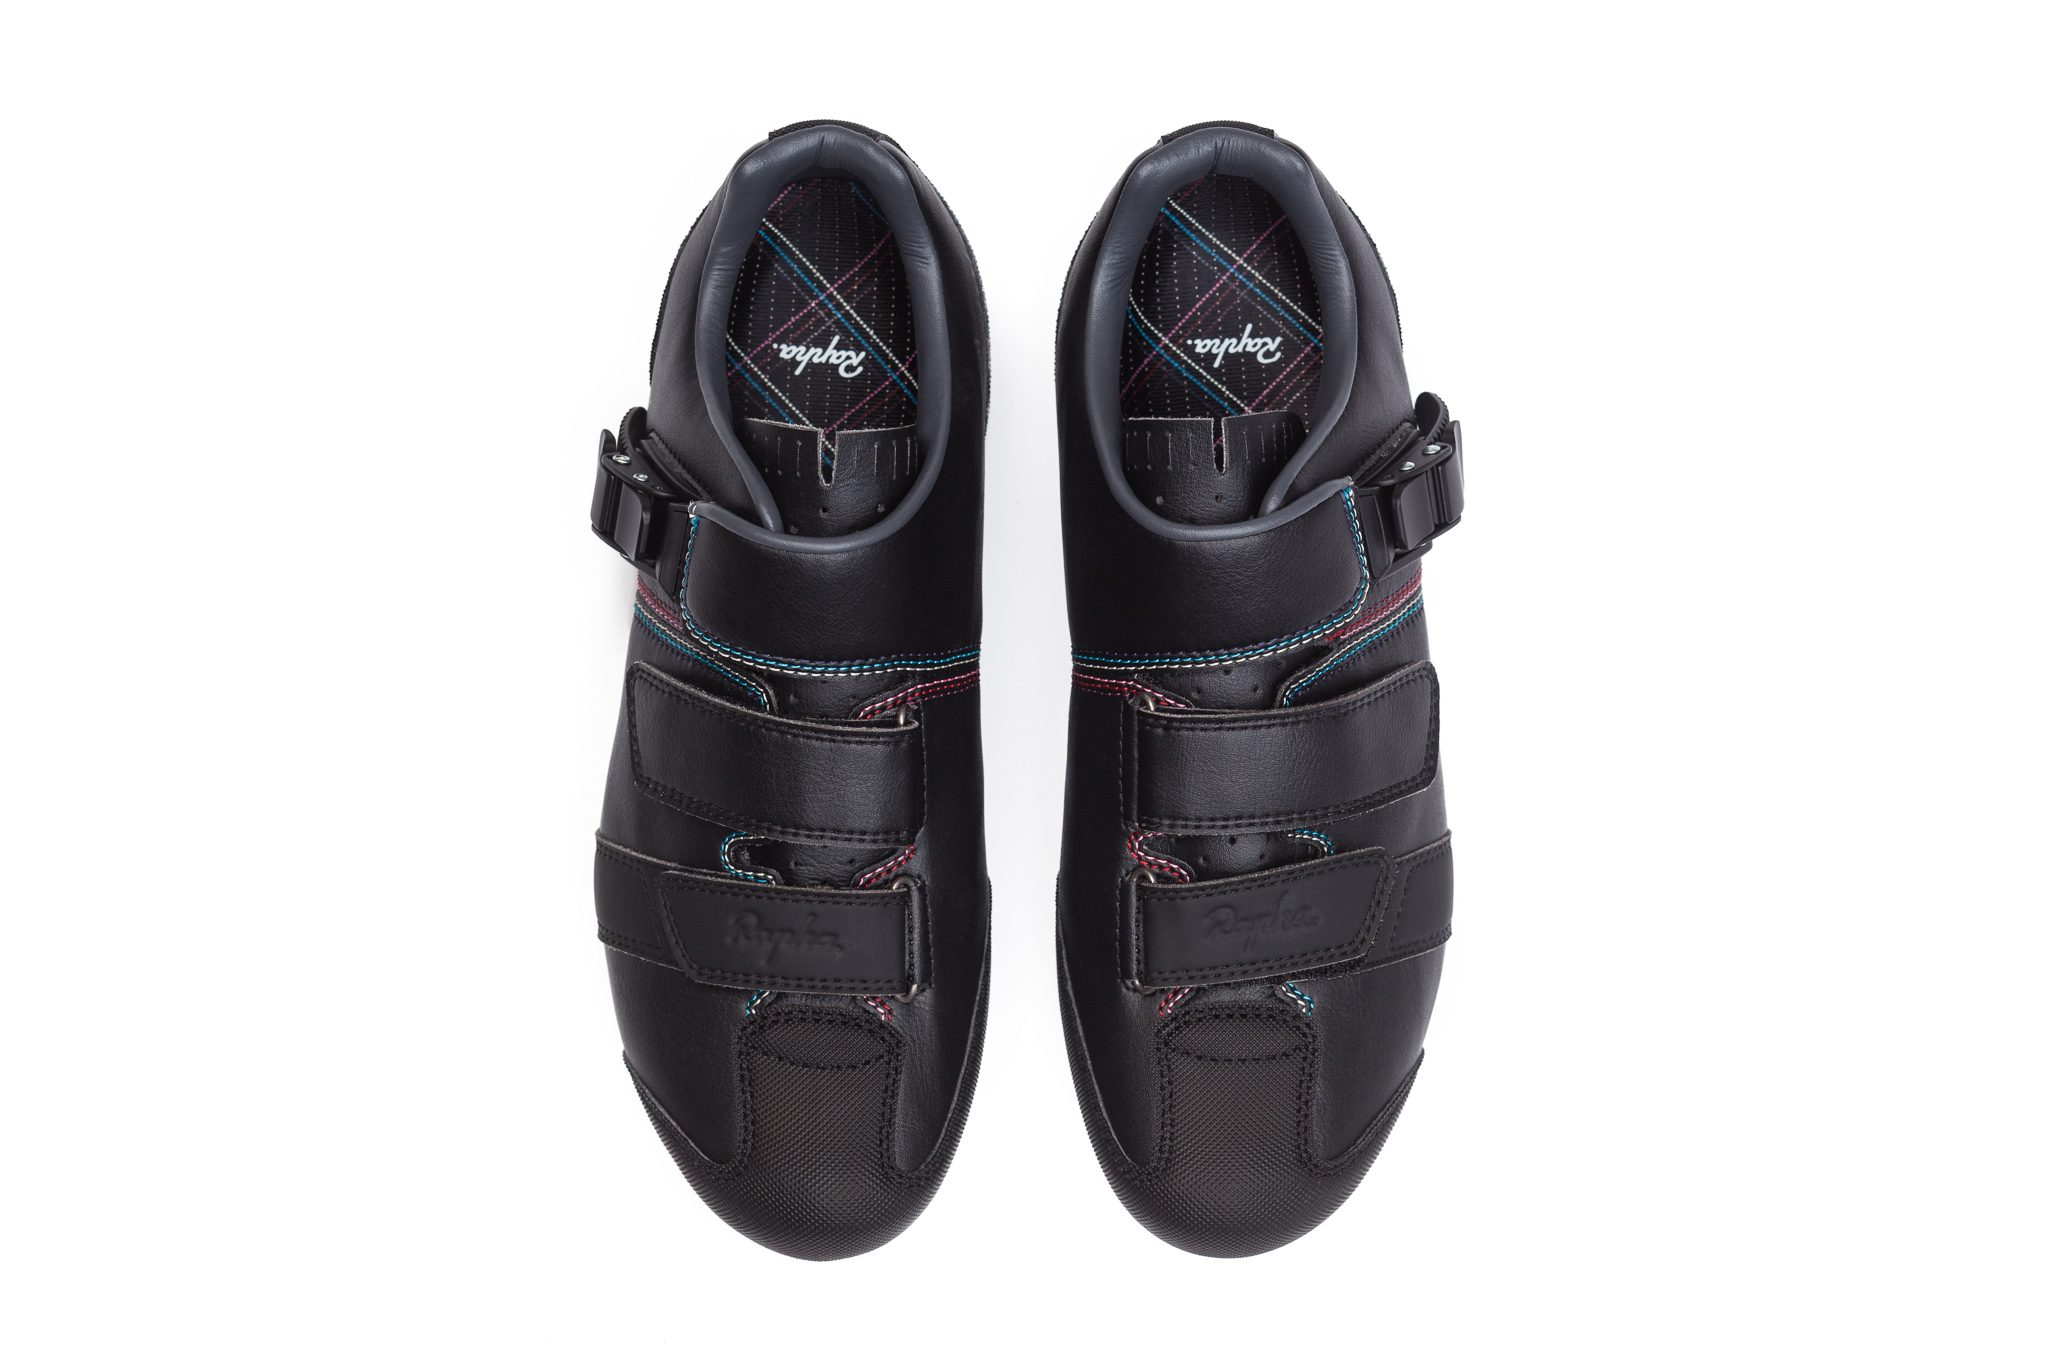 AW14-Rapha-Cross-Shoe-Main-6